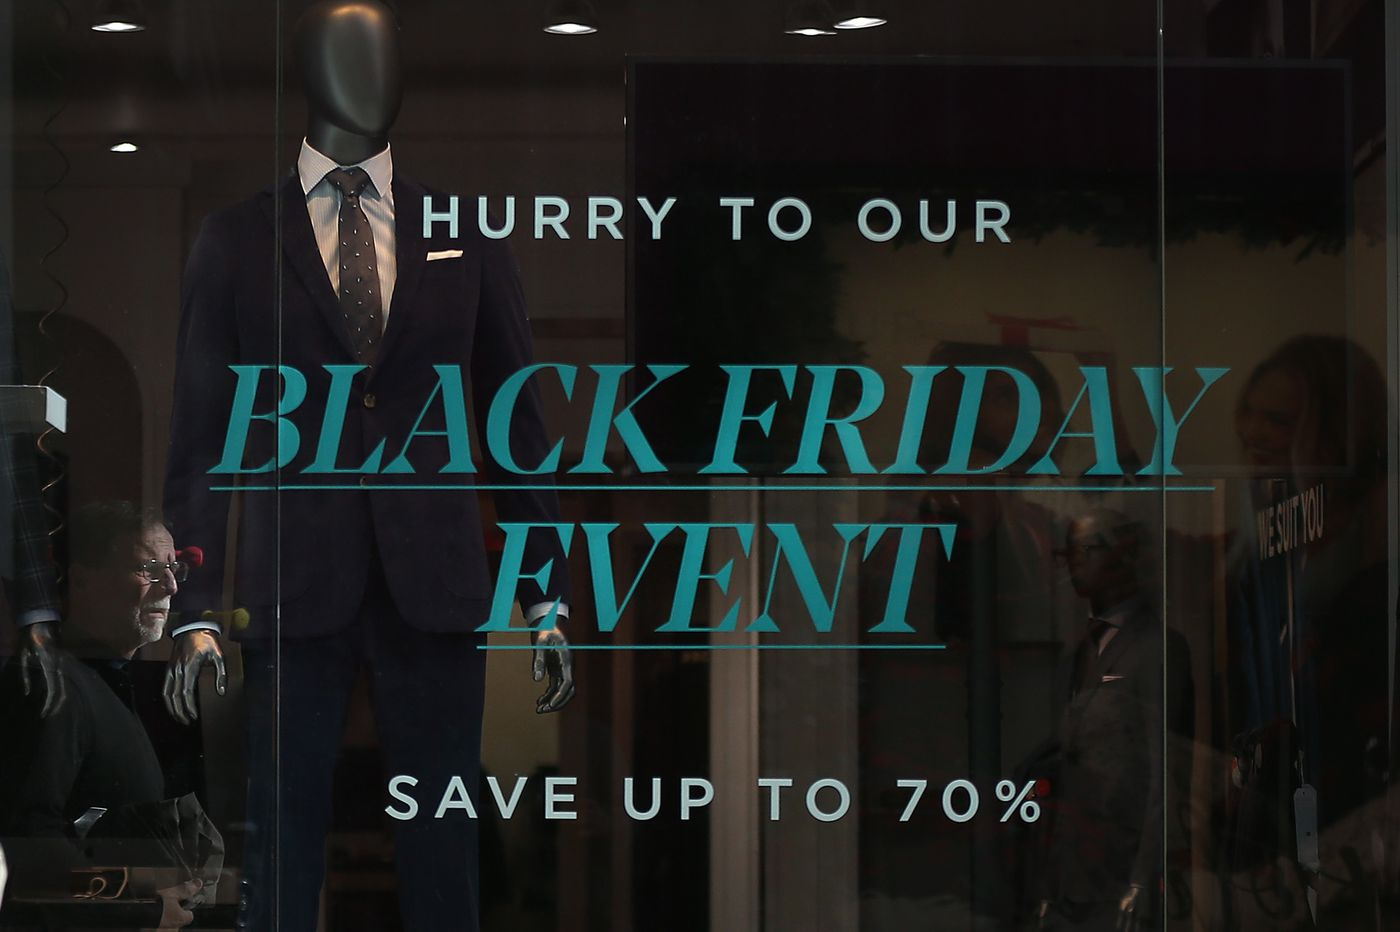 Beware of deceptive discounts on Black Friday